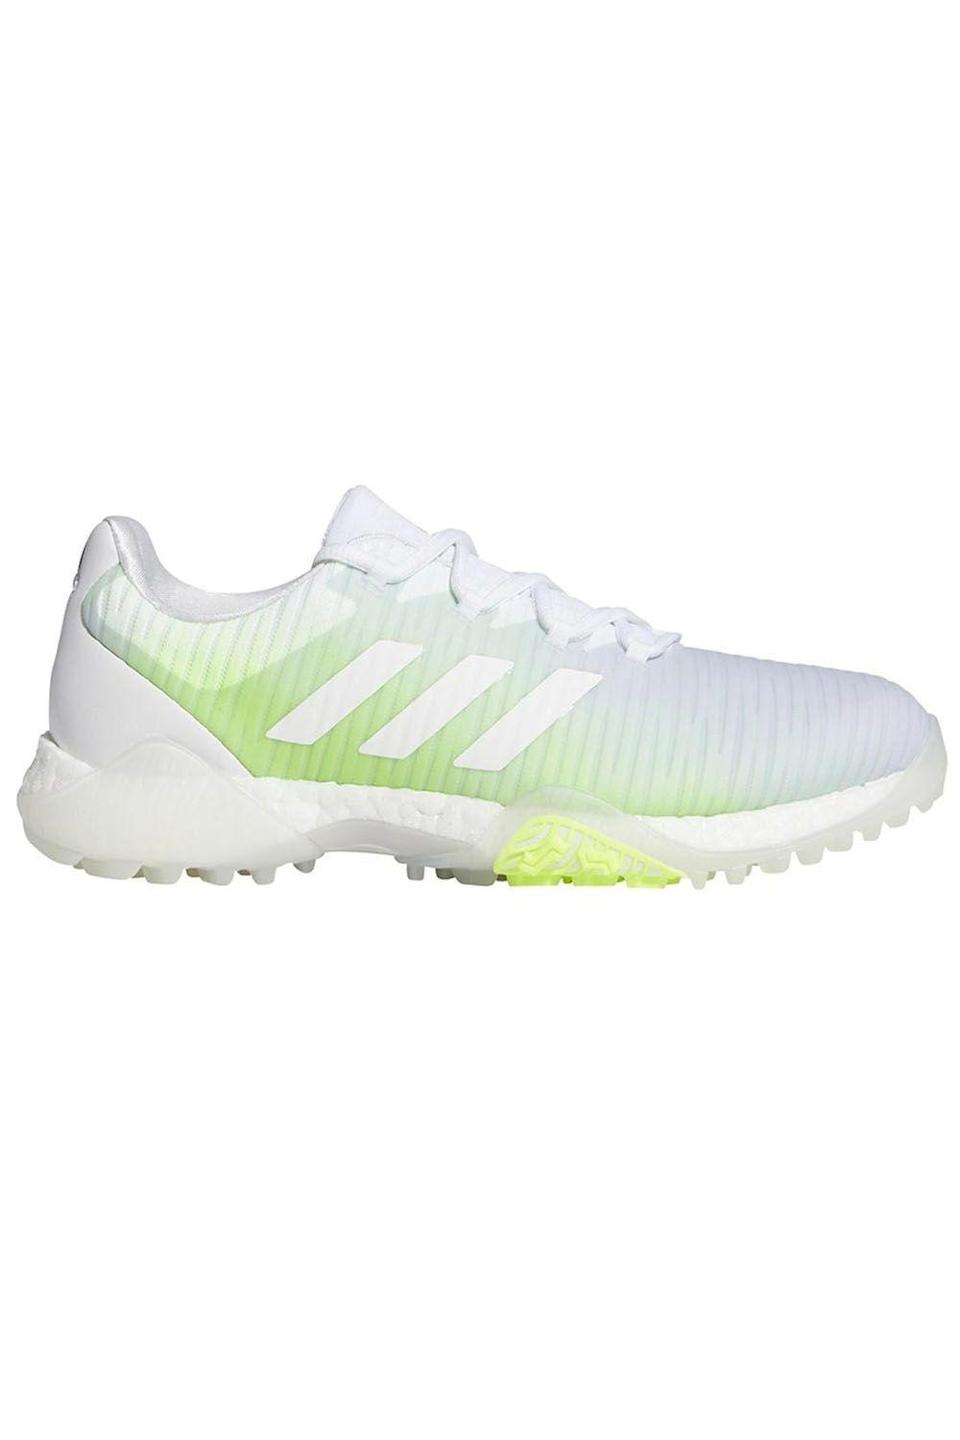 """<p><strong>adidas</strong></p><p>adidas.com</p><p><strong>$130.00</strong></p><p><a href=""""https://go.redirectingat.com?id=74968X1596630&url=https%3A%2F%2Fwww.adidas.com%2Fus%2Fcodechaos-golf-shoes%2FEE9336.html&sref=https%3A%2F%2Fwww.cosmopolitan.com%2Fstyle-beauty%2Fbeauty%2Fg33482166%2Feditor-picks-cosmo-klarna-hauliday-2020%2F"""" rel=""""nofollow noopener"""" target=""""_blank"""" data-ylk=""""slk:Shop Now"""" class=""""link rapid-noclick-resp"""">Shop Now</a></p><p>""""I've been trying to get into golf for a socially distanced new hobby, but it turns out you need…all this stuff for it? Lol. (Also, I'm terrible, but that's not the point.) Klarna + a discount on <strong>this pretty pair of <a href=""""https://www.cosmopolitan.com/style-beauty/fashion/g25720620/best-sneaker-brands/"""" rel=""""nofollow noopener"""" target=""""_blank"""" data-ylk=""""slk:shoes"""" class=""""link rapid-noclick-resp"""">shoes</a> from Adidas will make gearing up a whole lot more palatable!""""</strong>—<em>Madeleine Reeves, deputy articles director</em></p><p><strong><strong><strong>💫</strong></strong></strong><strong>PROMOTION:</strong> Save 20% on orders of $100 or more with the code <strong>KLARNAHAULIDAY</strong>. <br></p>"""